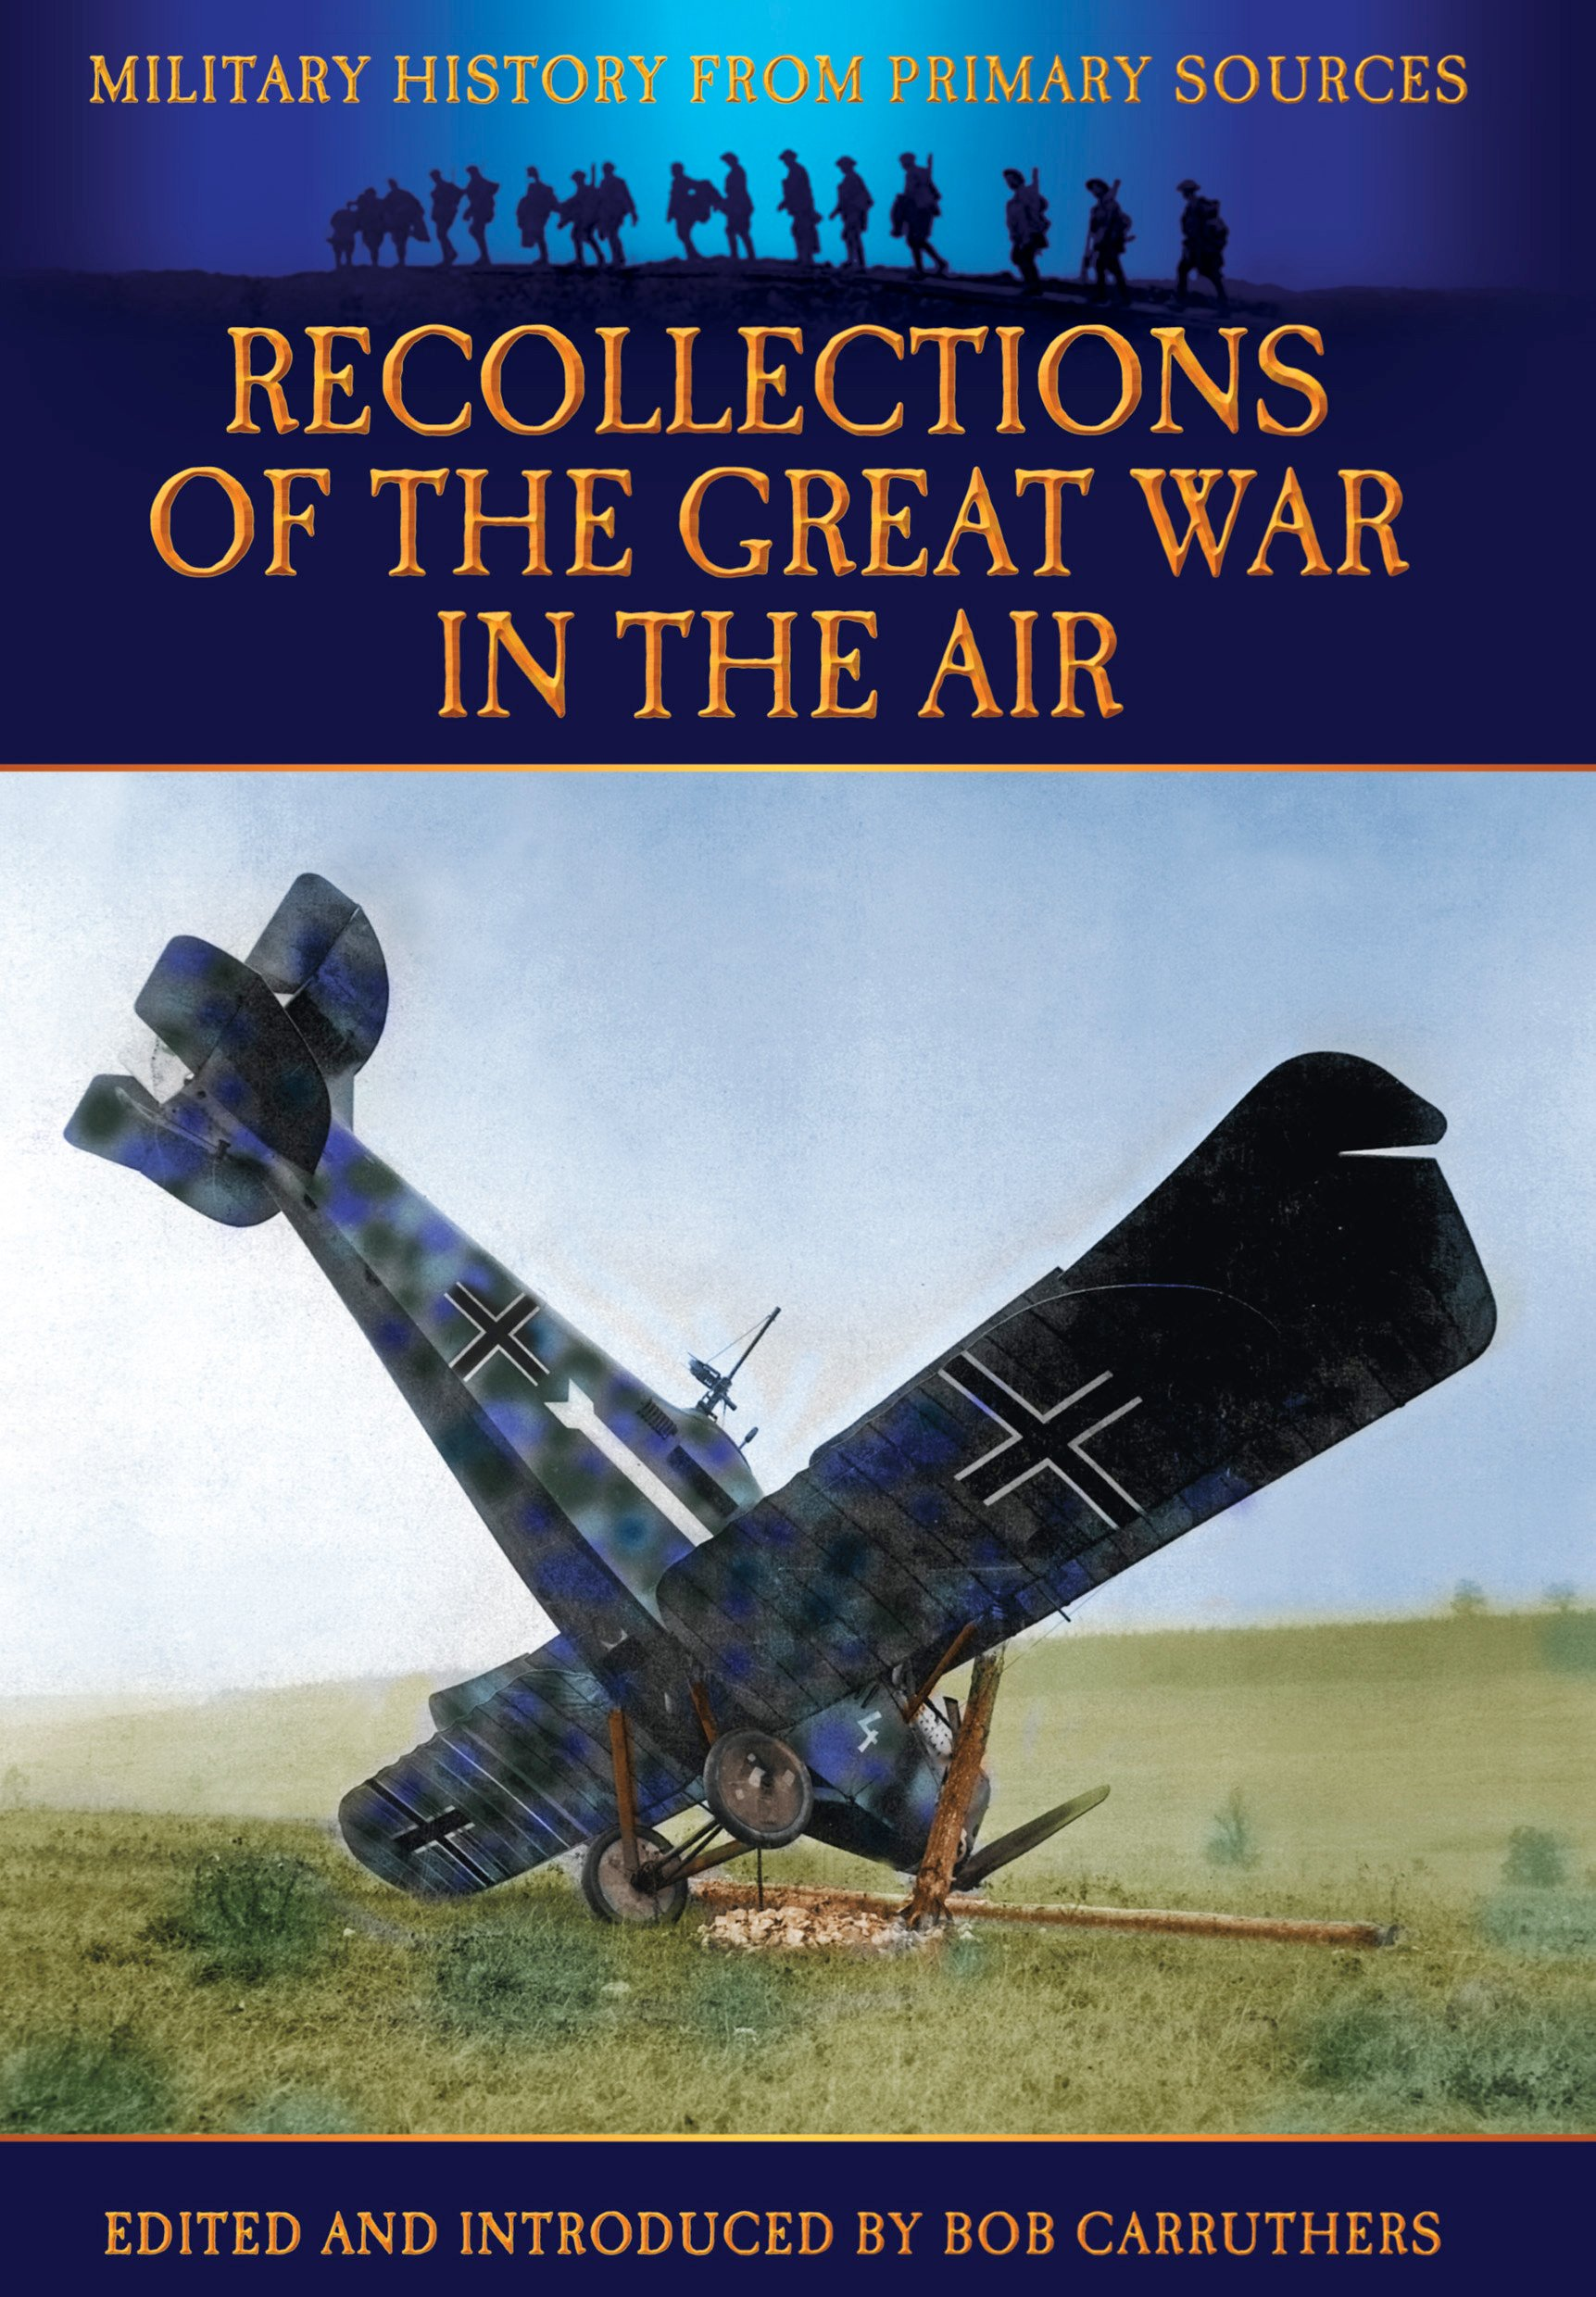 Recollections of the Great War in the Air (Military History from Primary Sources) pdf